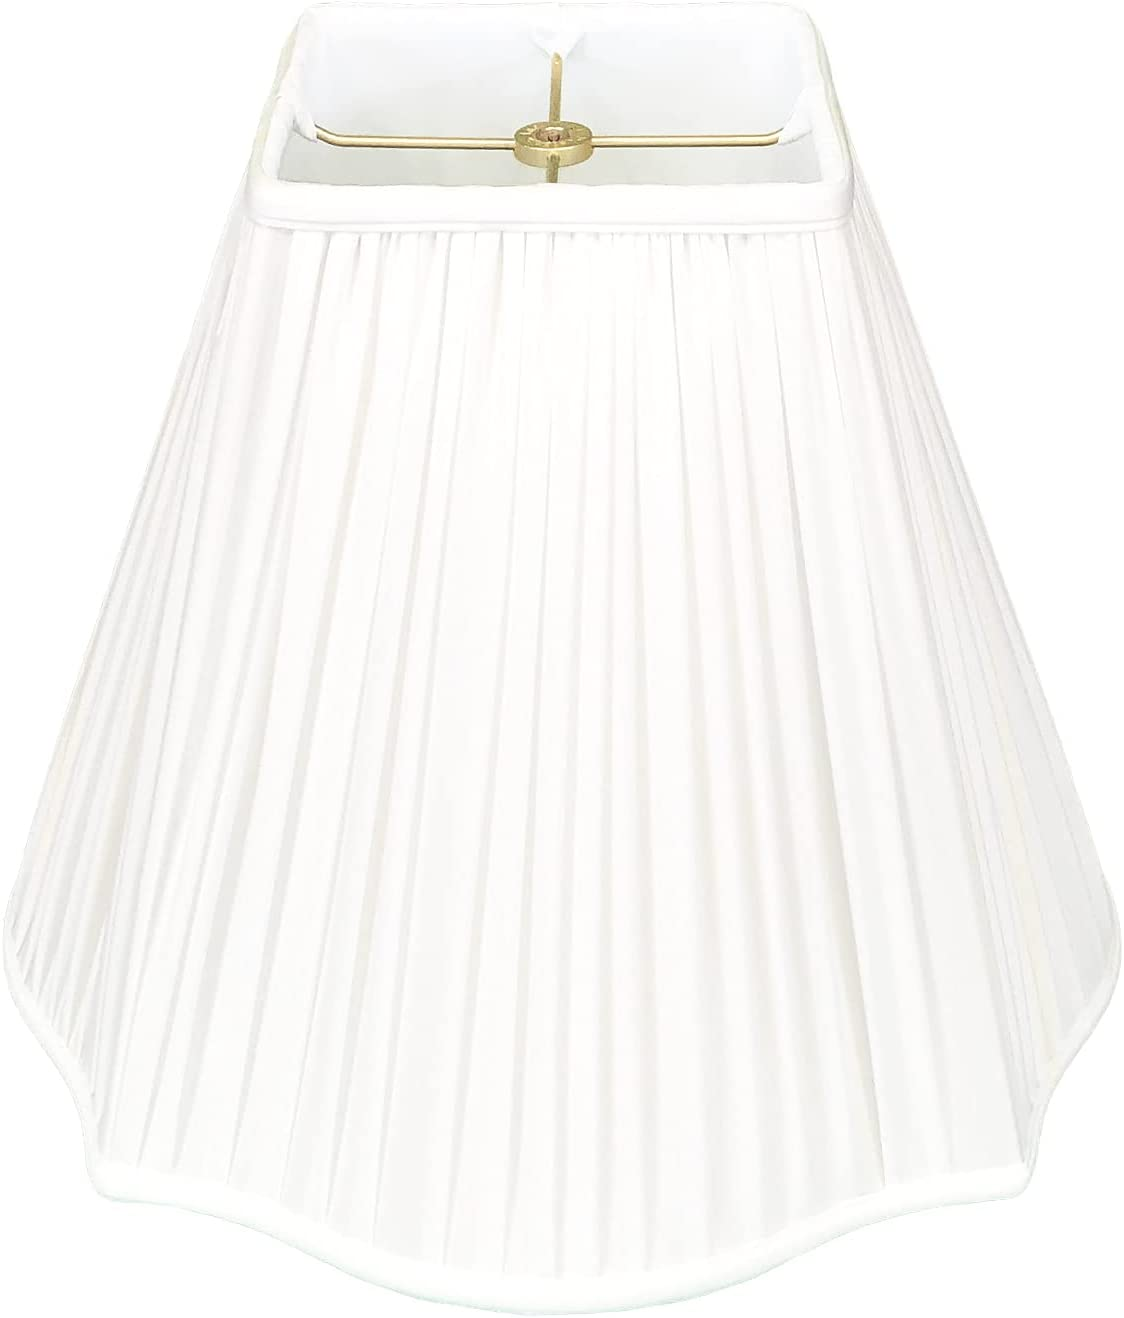 Royal Designs Fancy Large discharge sale Soldering Square Gather Pleat White Lamp Shade Basic